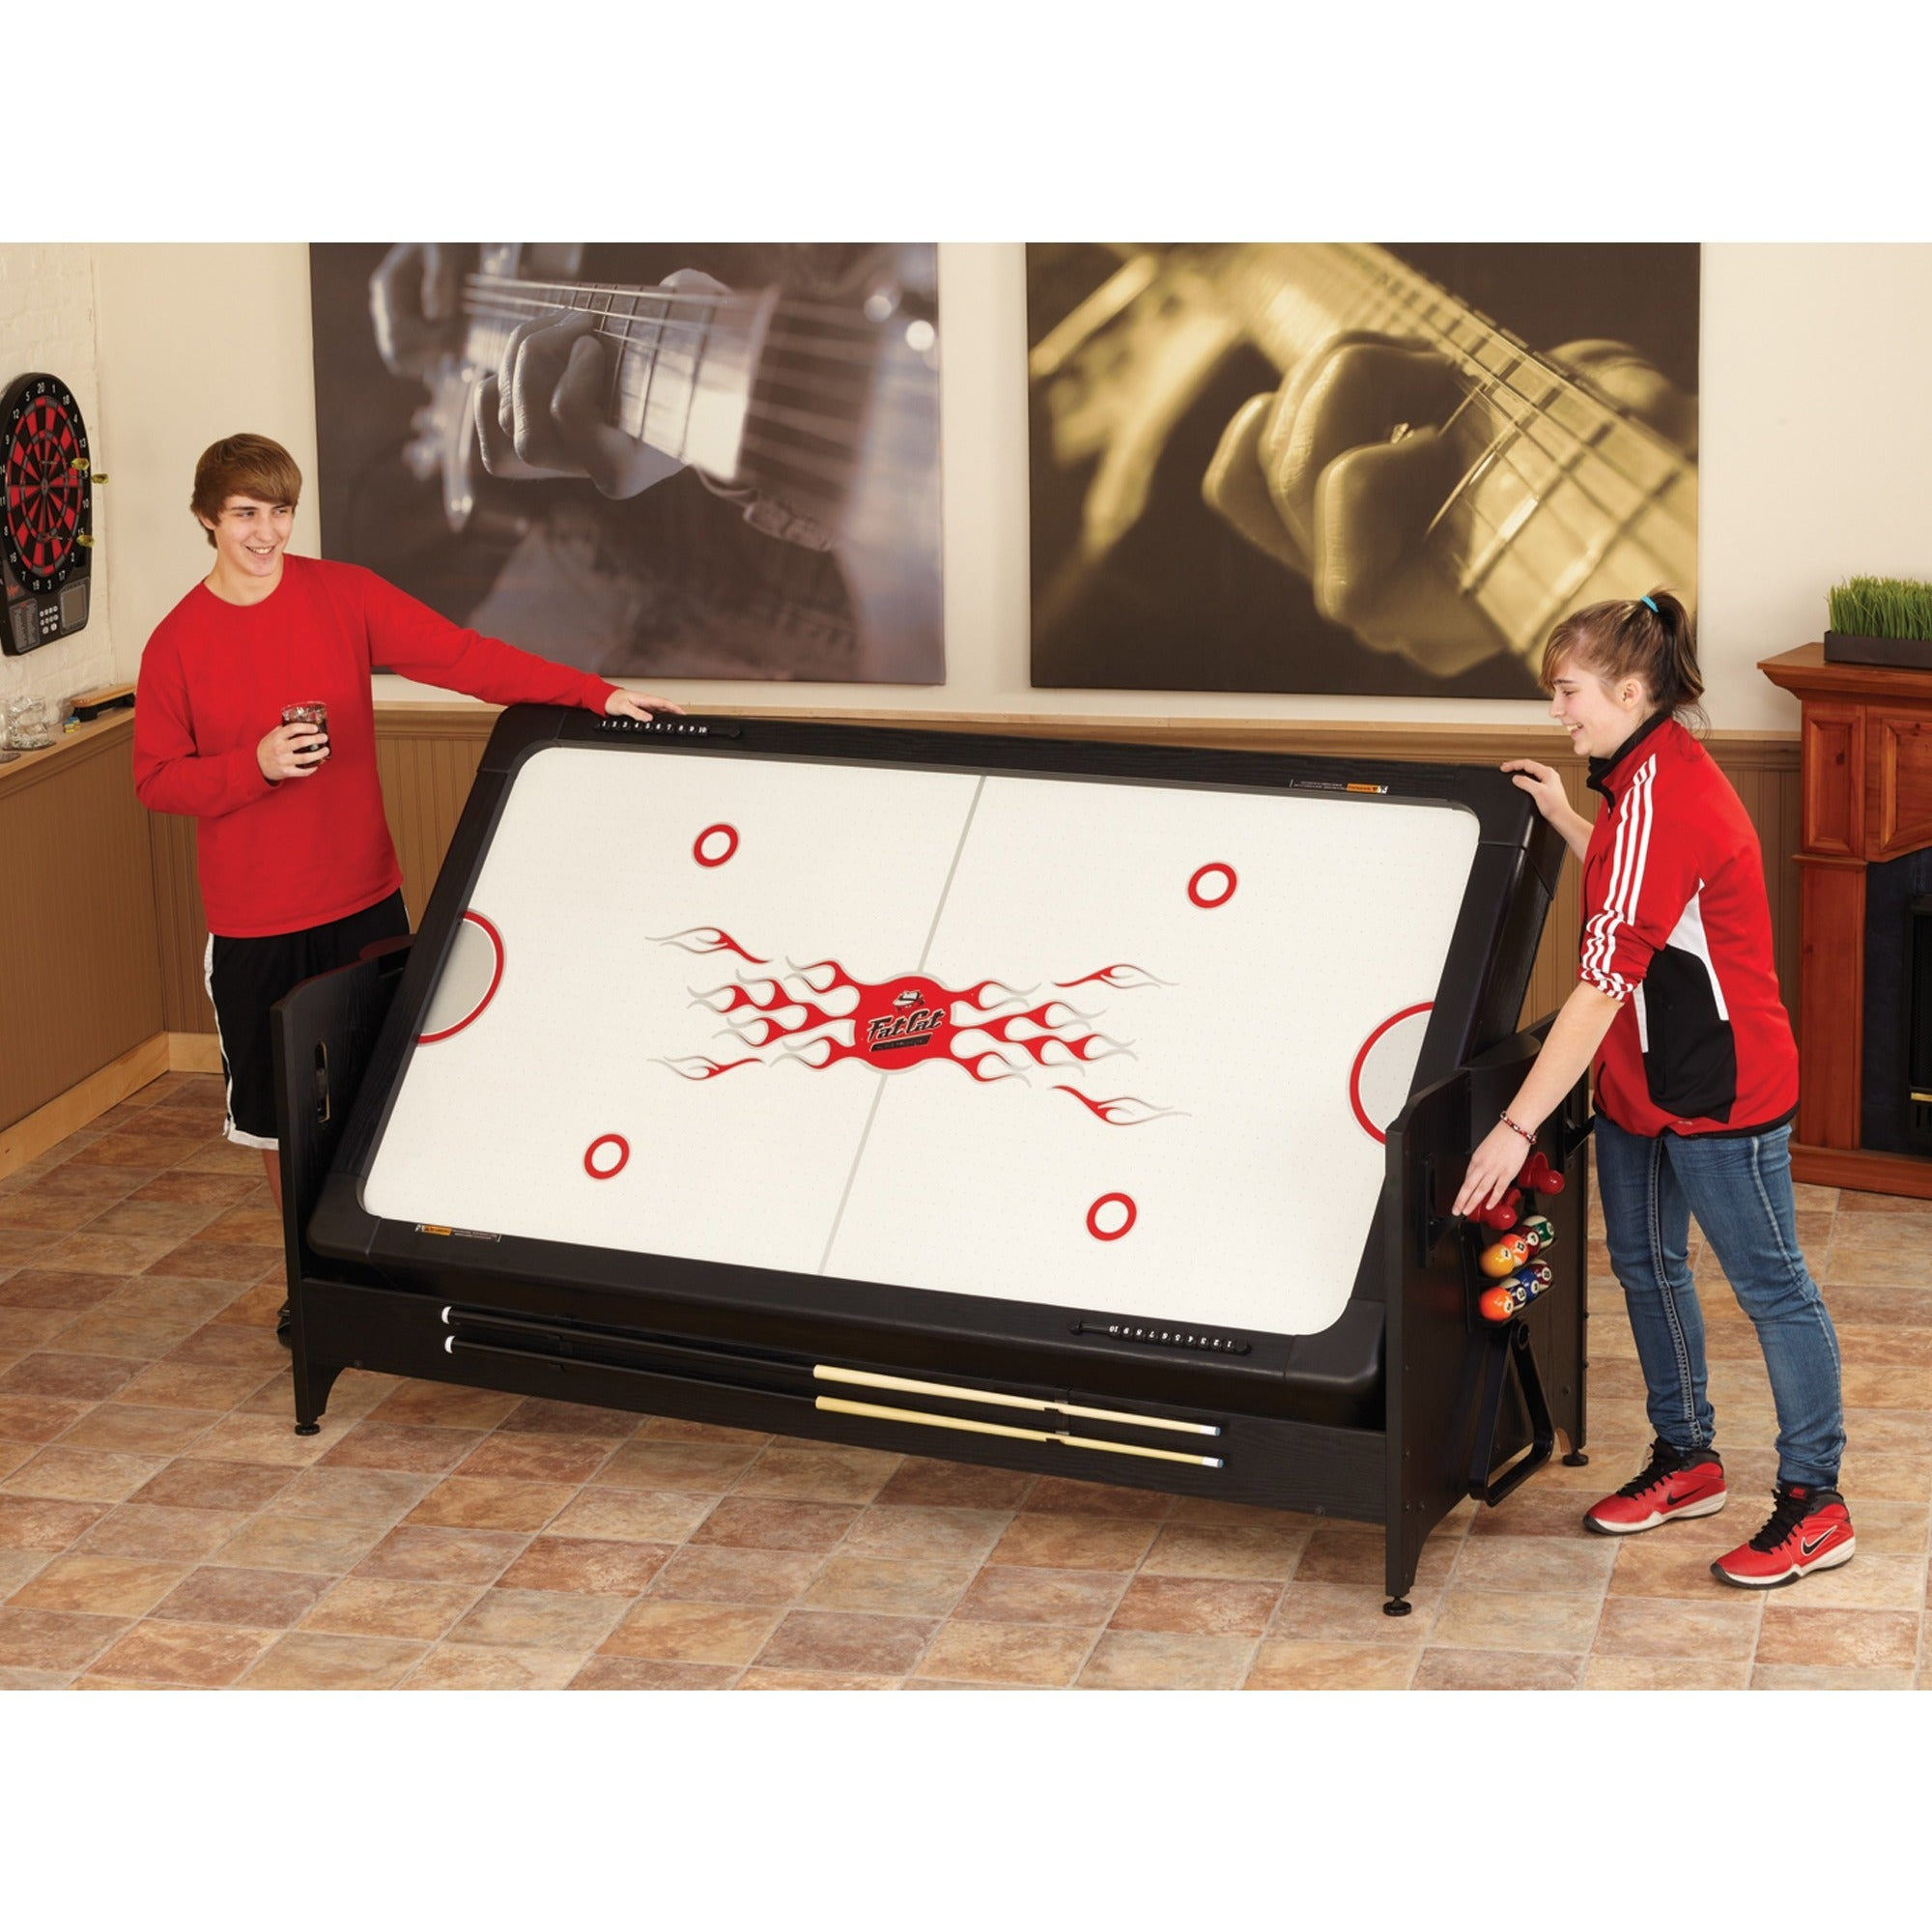 Charming Fat Cat Air Hockey Table #17 - Fat Cat 64-1046 Original 3-in-1 7-foot Pockey Game Table Billiards/ Air  Hockey/ Table Tennis - Black - Free Shipping Today - Overstock - 18326520